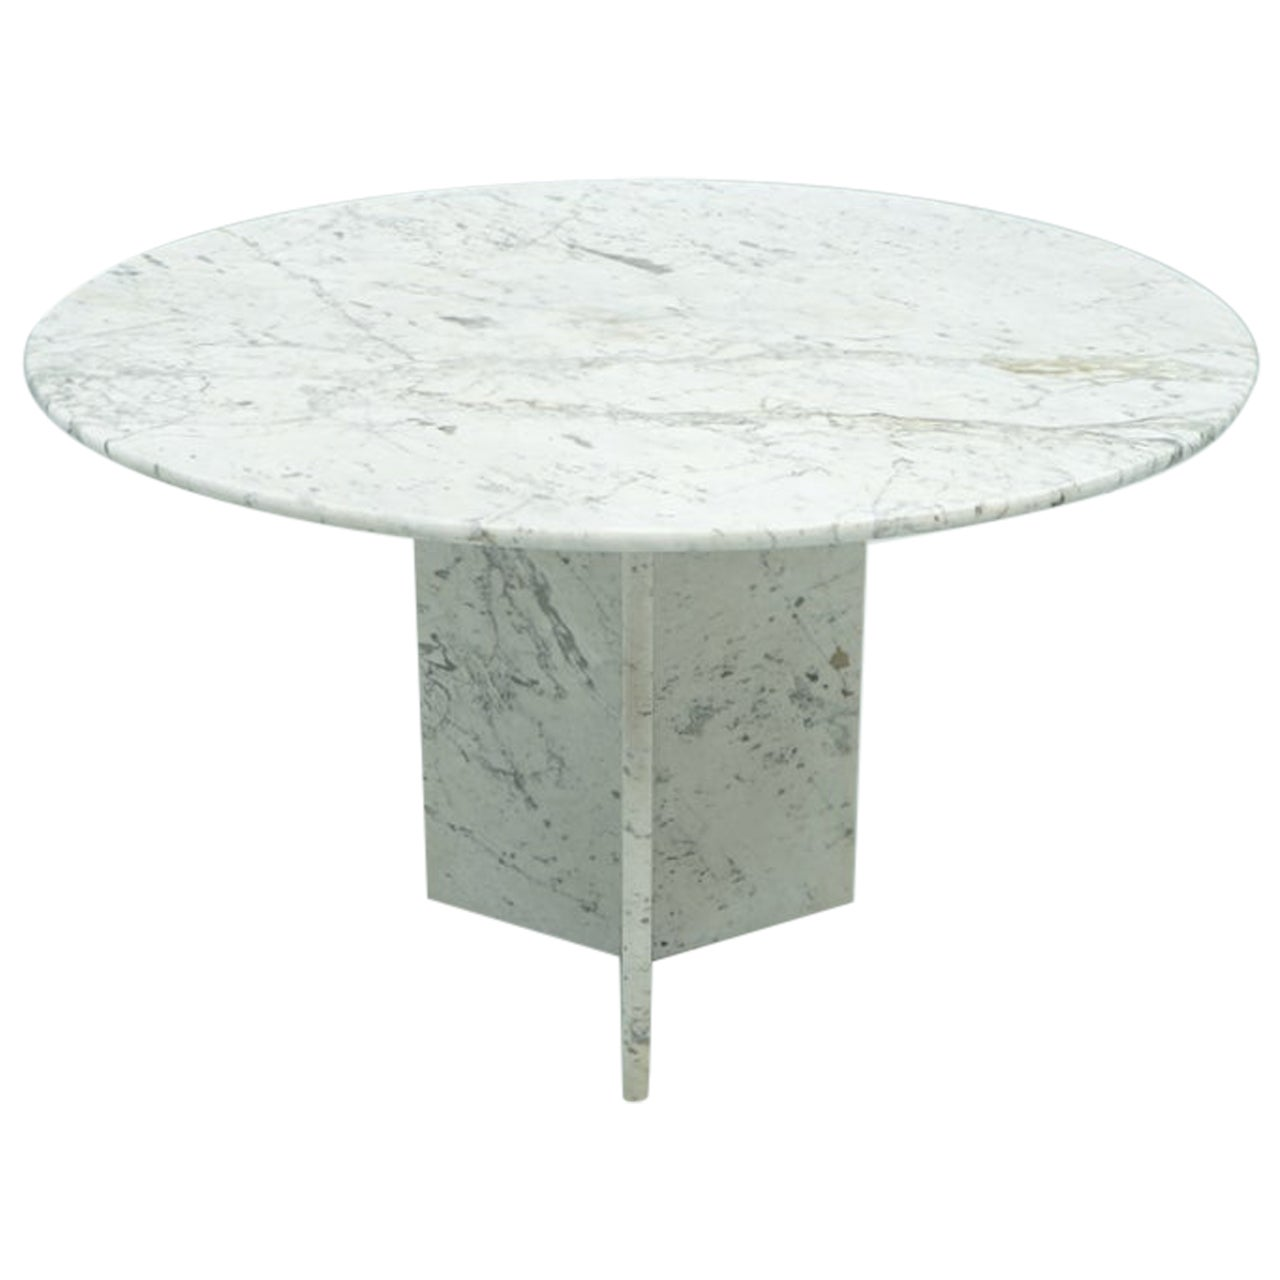 Circular Carrara Marble Dining Table, Italy, 1970s